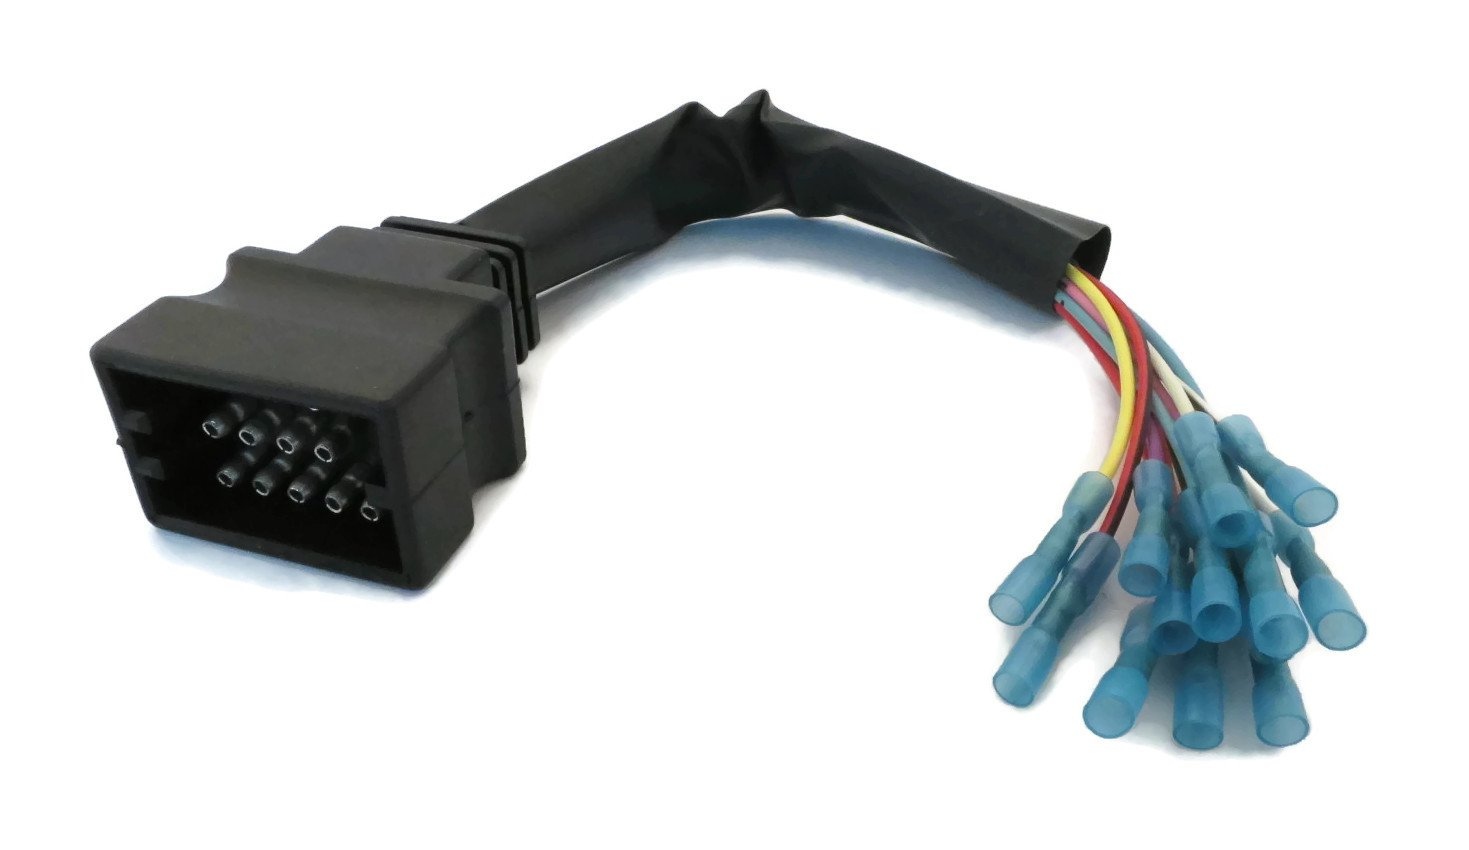 61IwZON%2BxQL._SL1469_ amazon com snow plow wiring harness repair kit (plow side how to repair wiring harness at soozxer.org